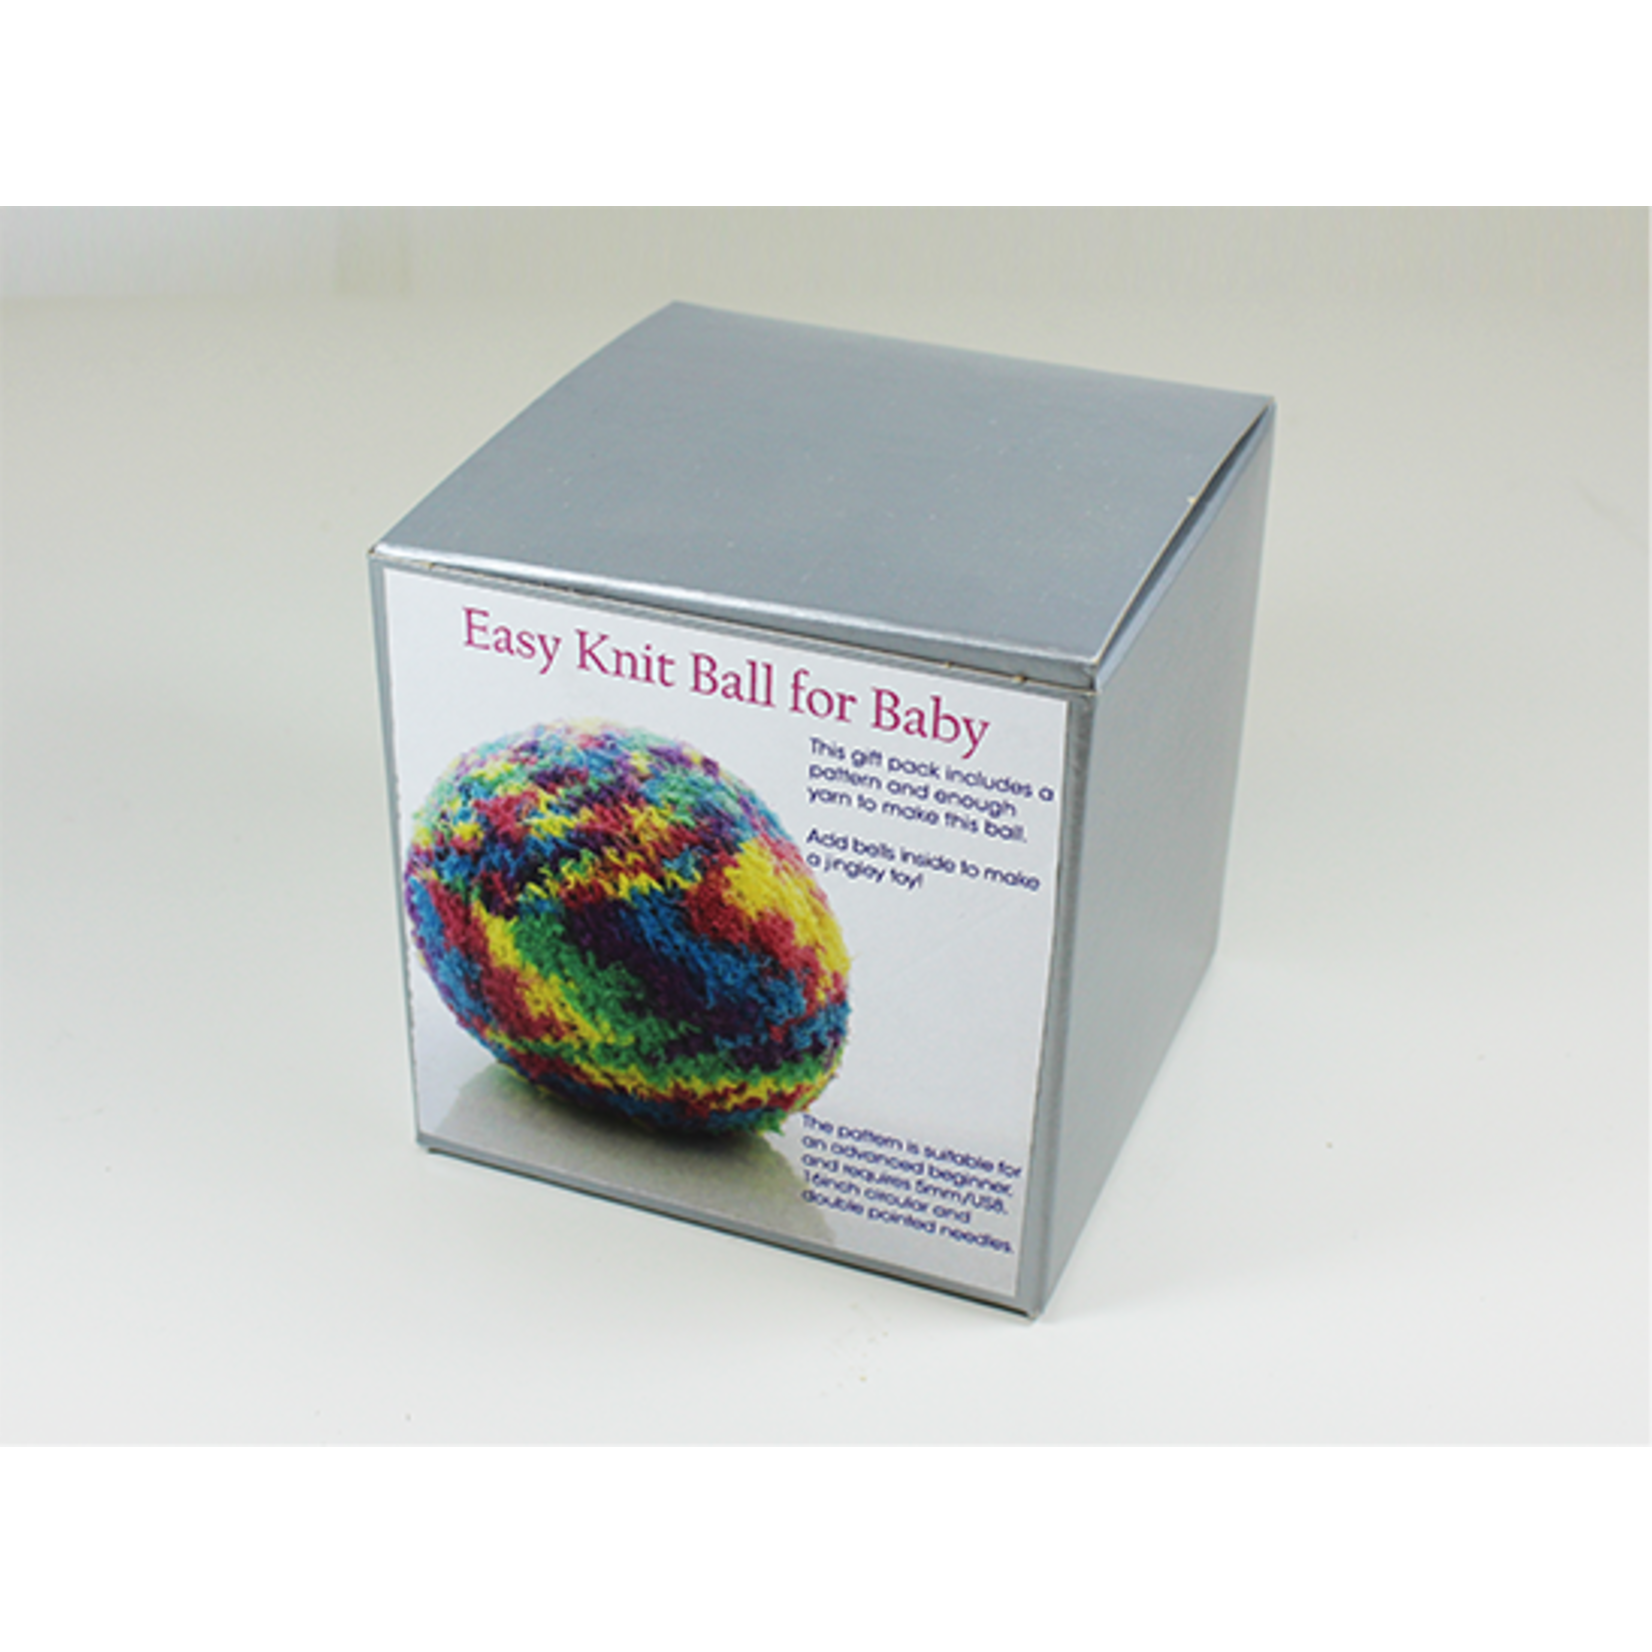 Easy Knit Ball for Baby